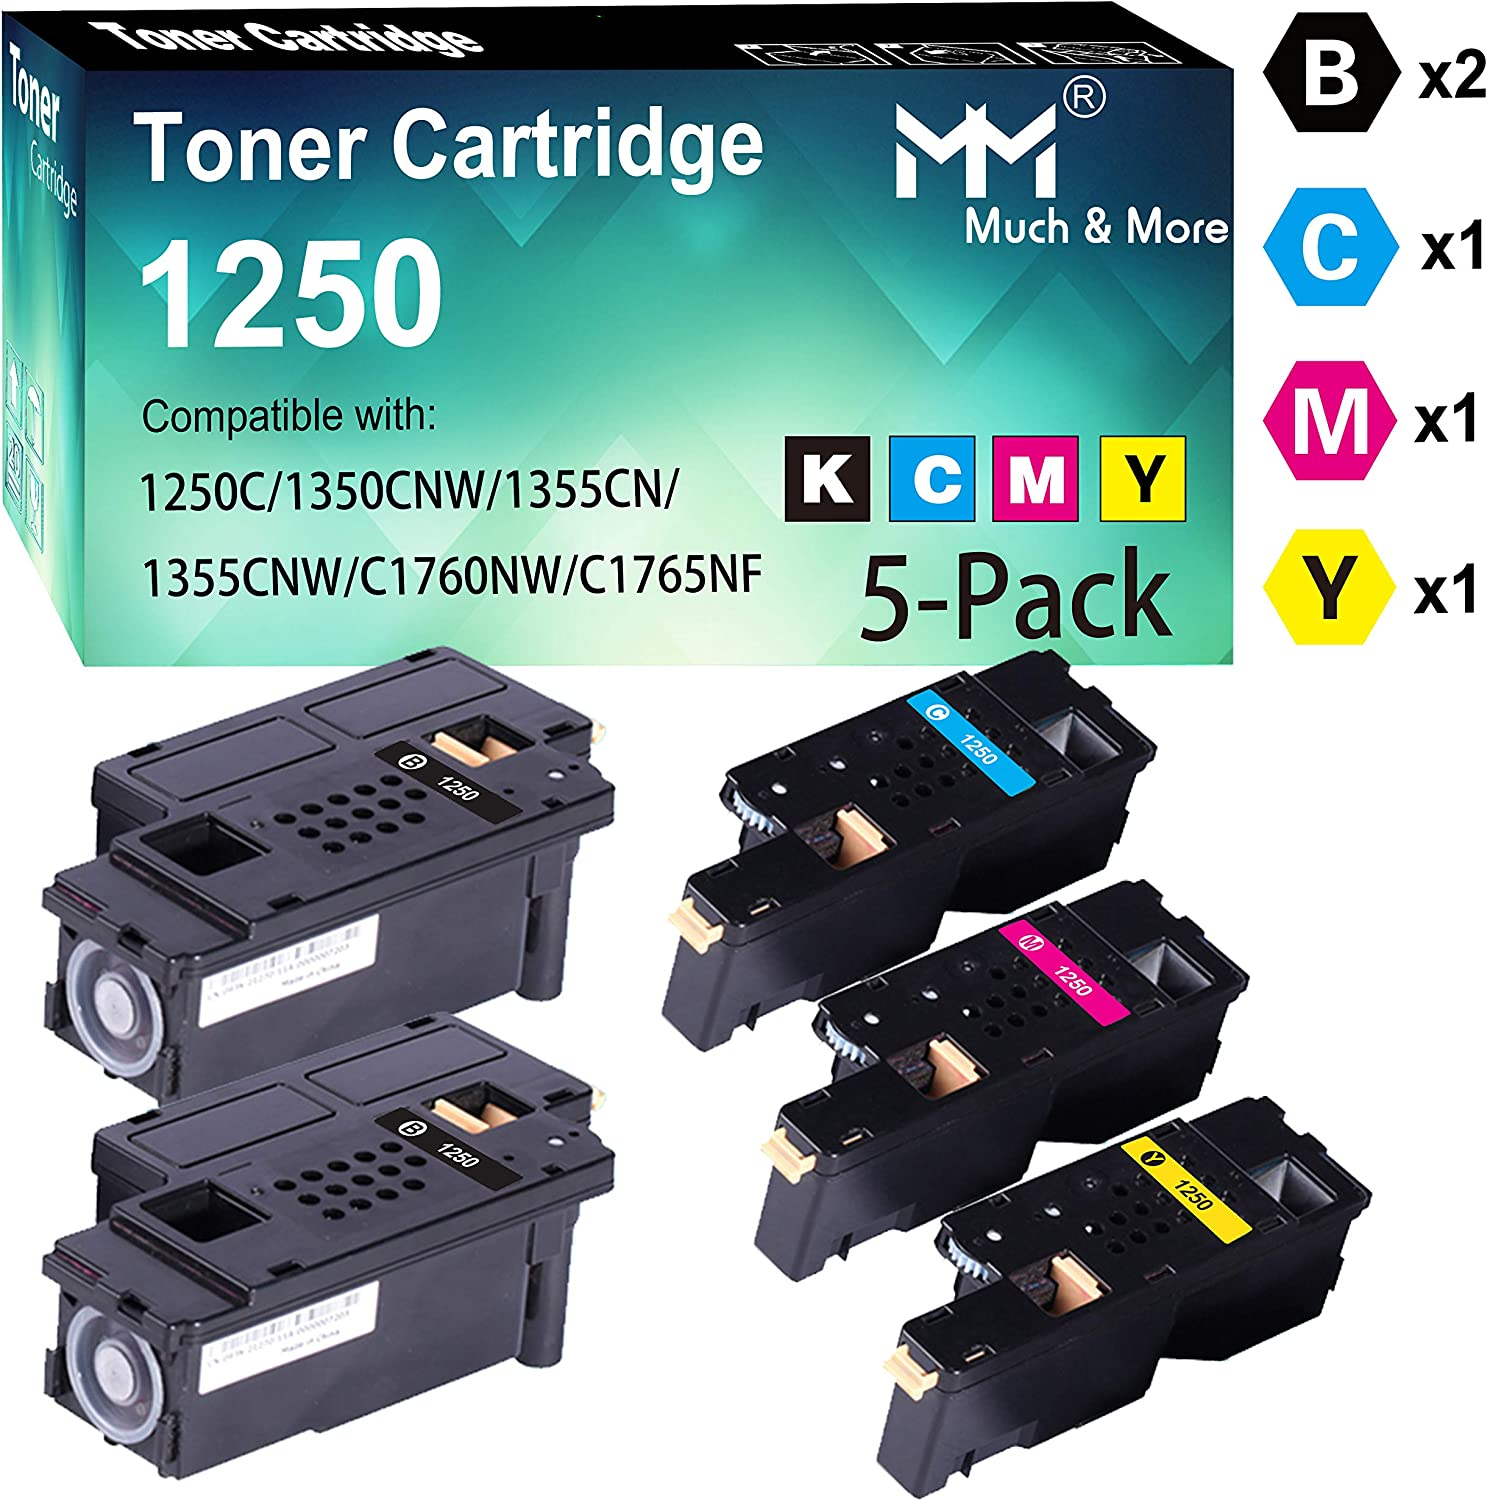 (5-Pack, 2X K+C+M+Y) Compatible Dell 810WH 1250 Toner Cartridge Used for Dell 1250c 1350cnw 1355cn 1355cnw C1760nw C1765nf C1765nfw Printer, by MuchMore